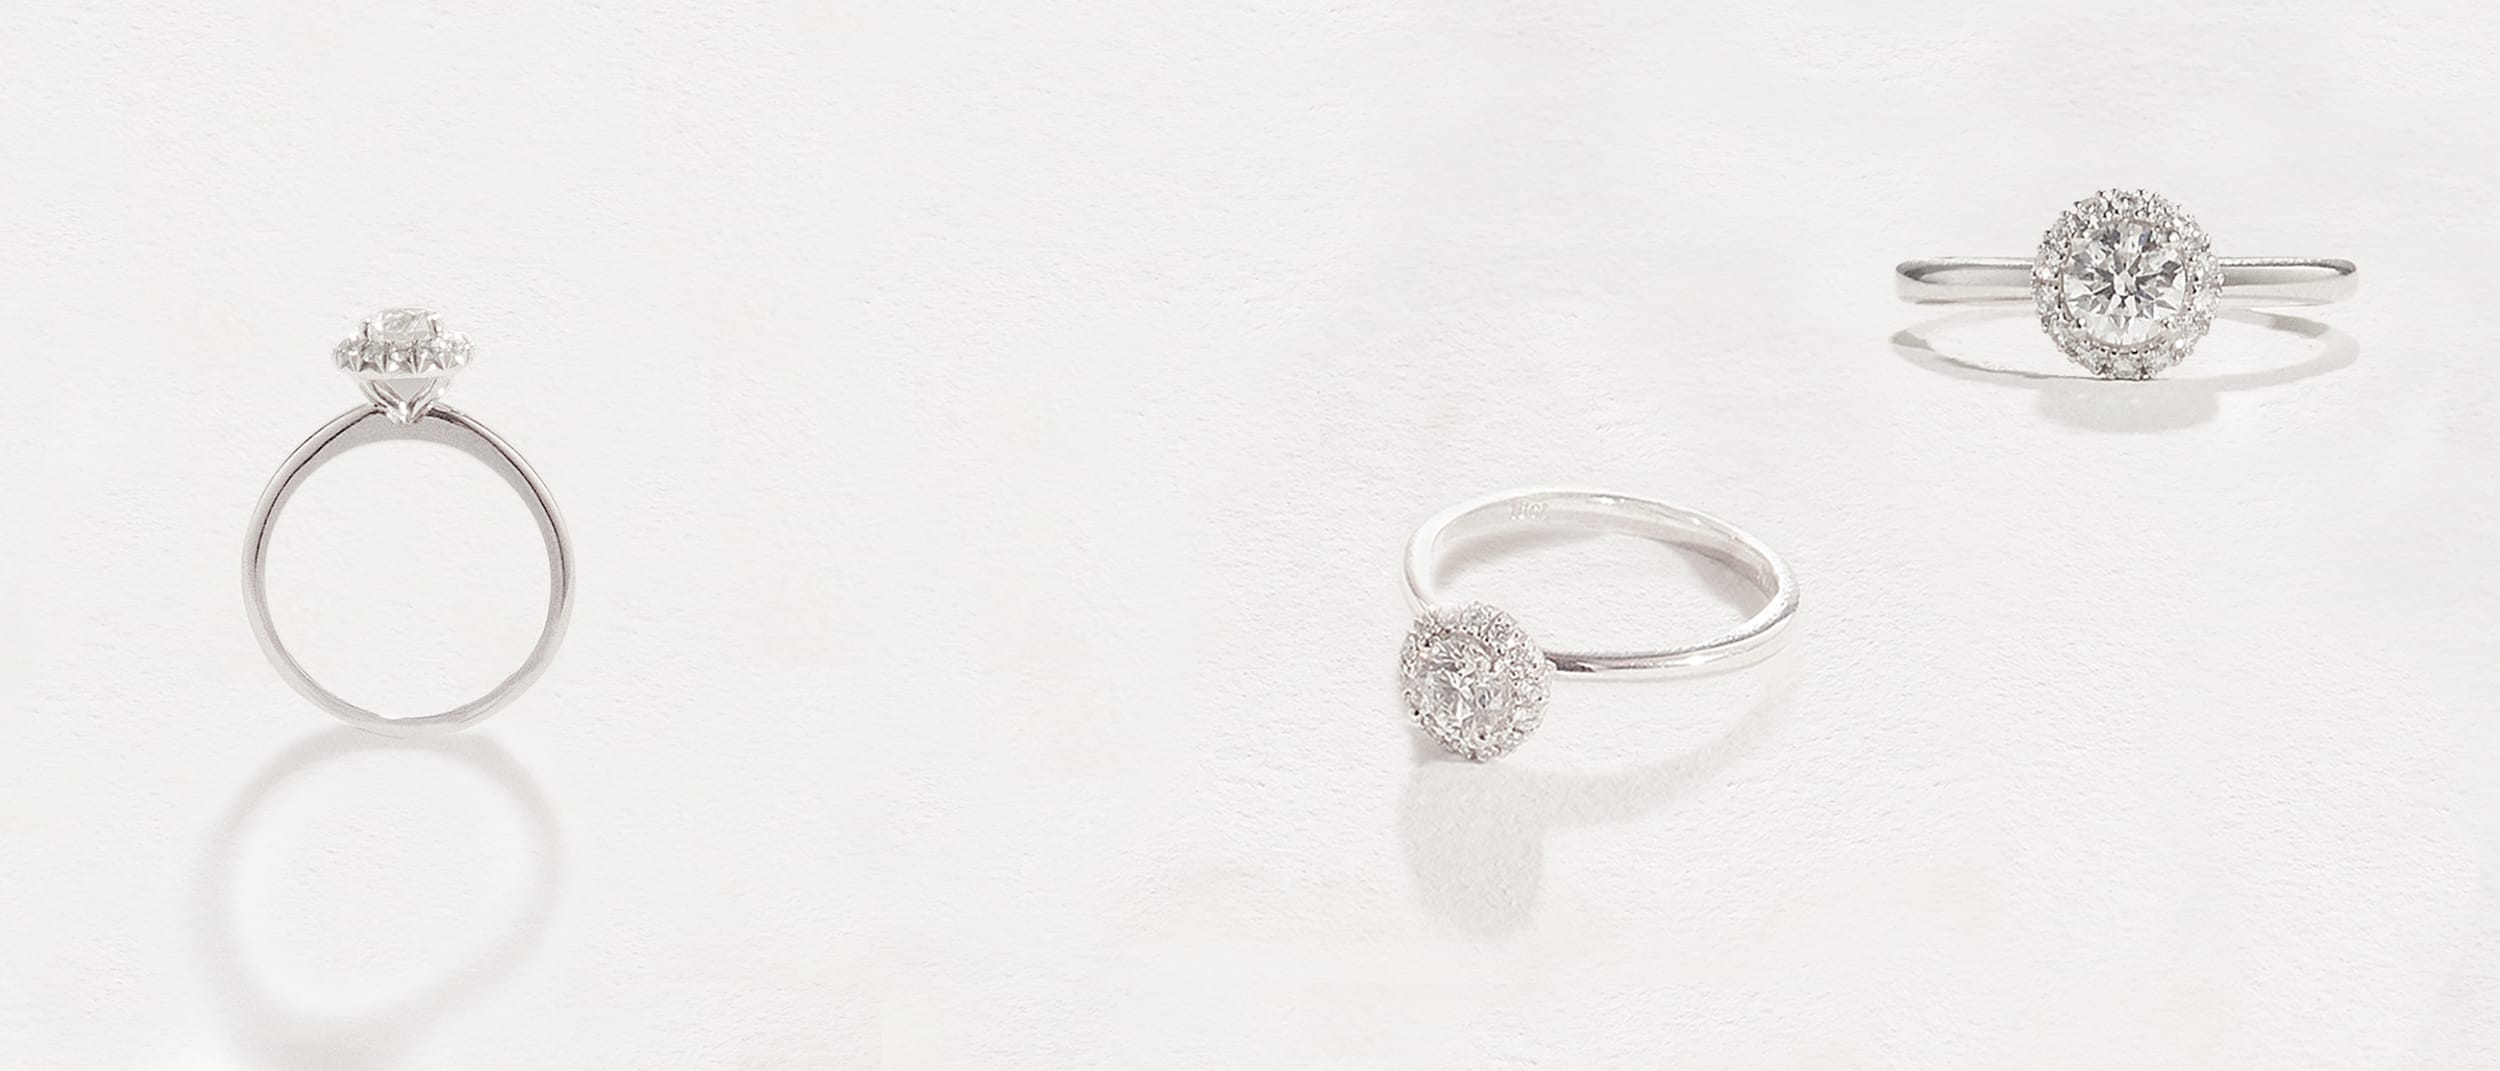 Win an engagement ring this Christmas with Anton